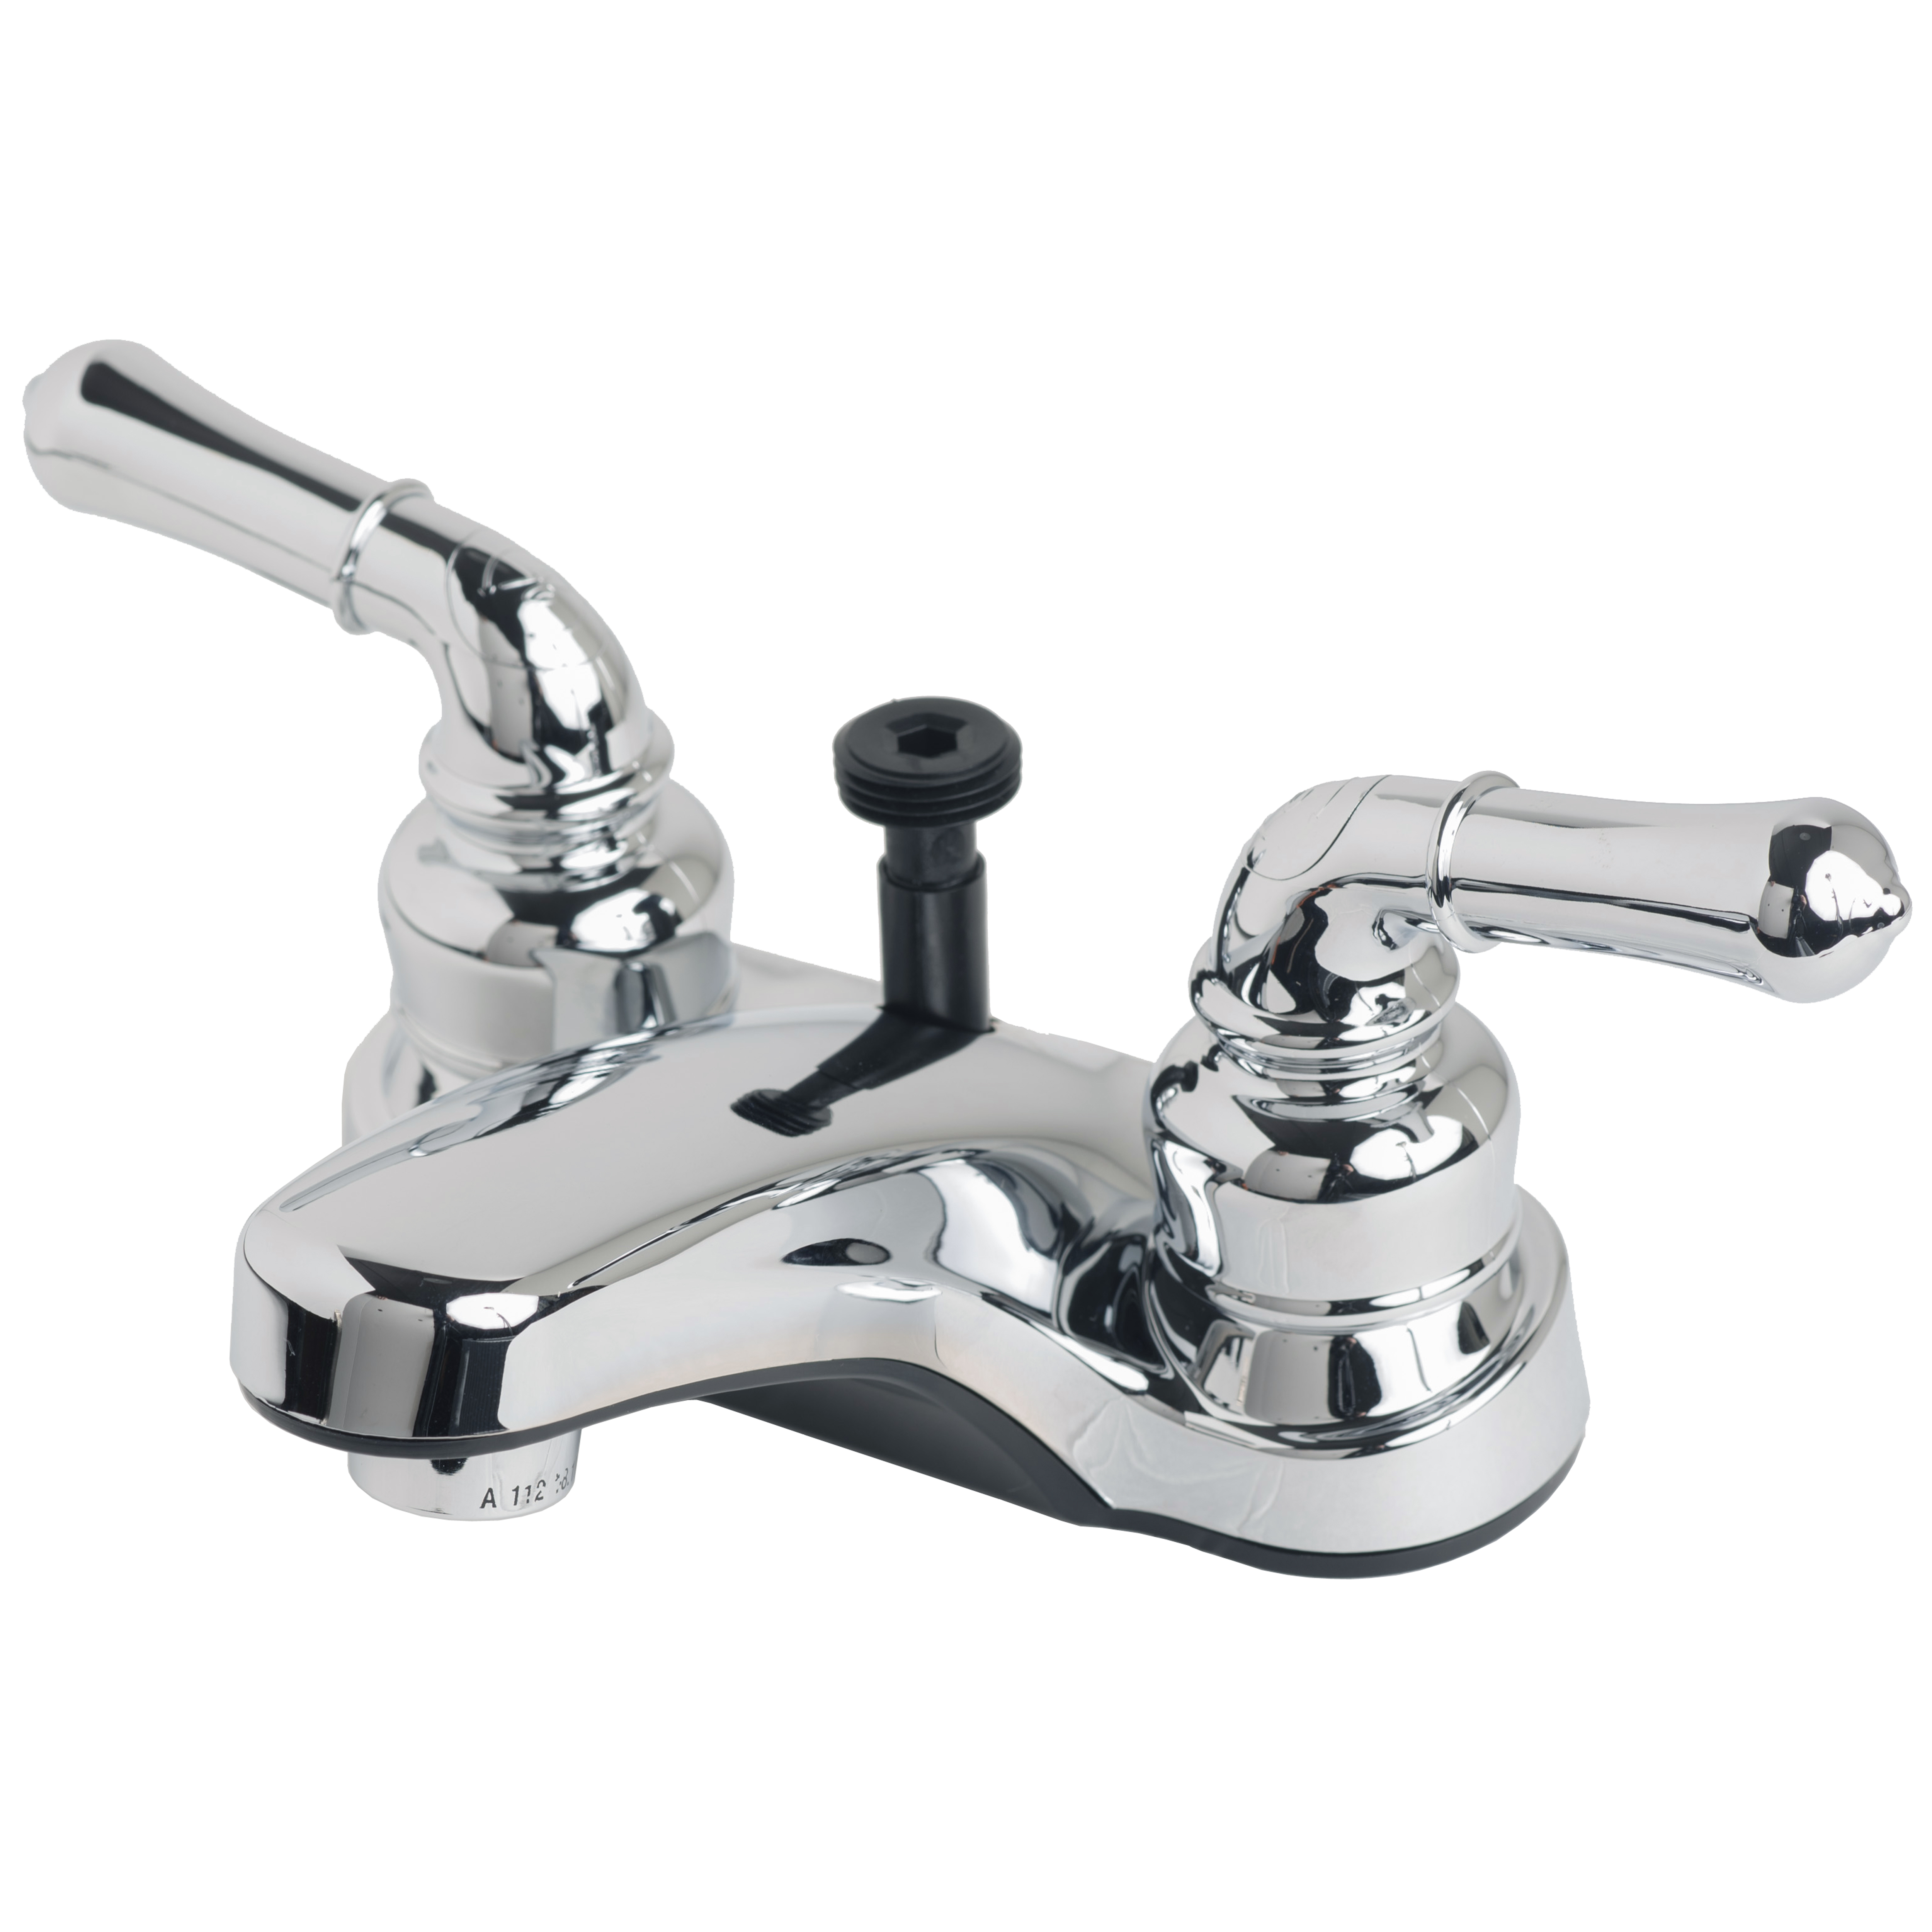 Rv Diverter Lavatory Faucet With Matching Hand Shower